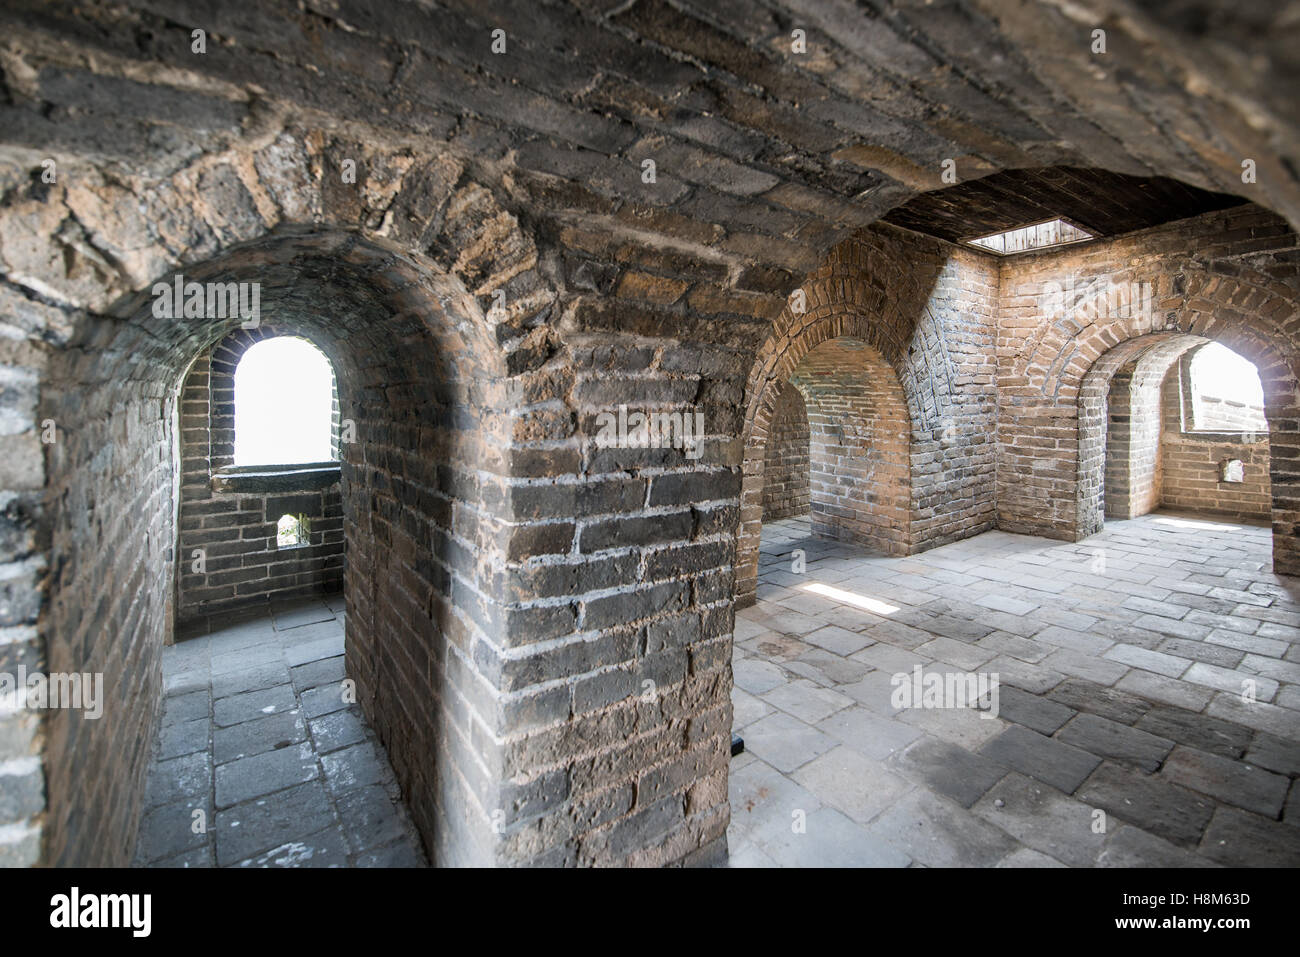 Mutianyu, China - Interior of the Great Wall of China. The wall stretches over 6,000 mountainous kilometers east - Stock Image